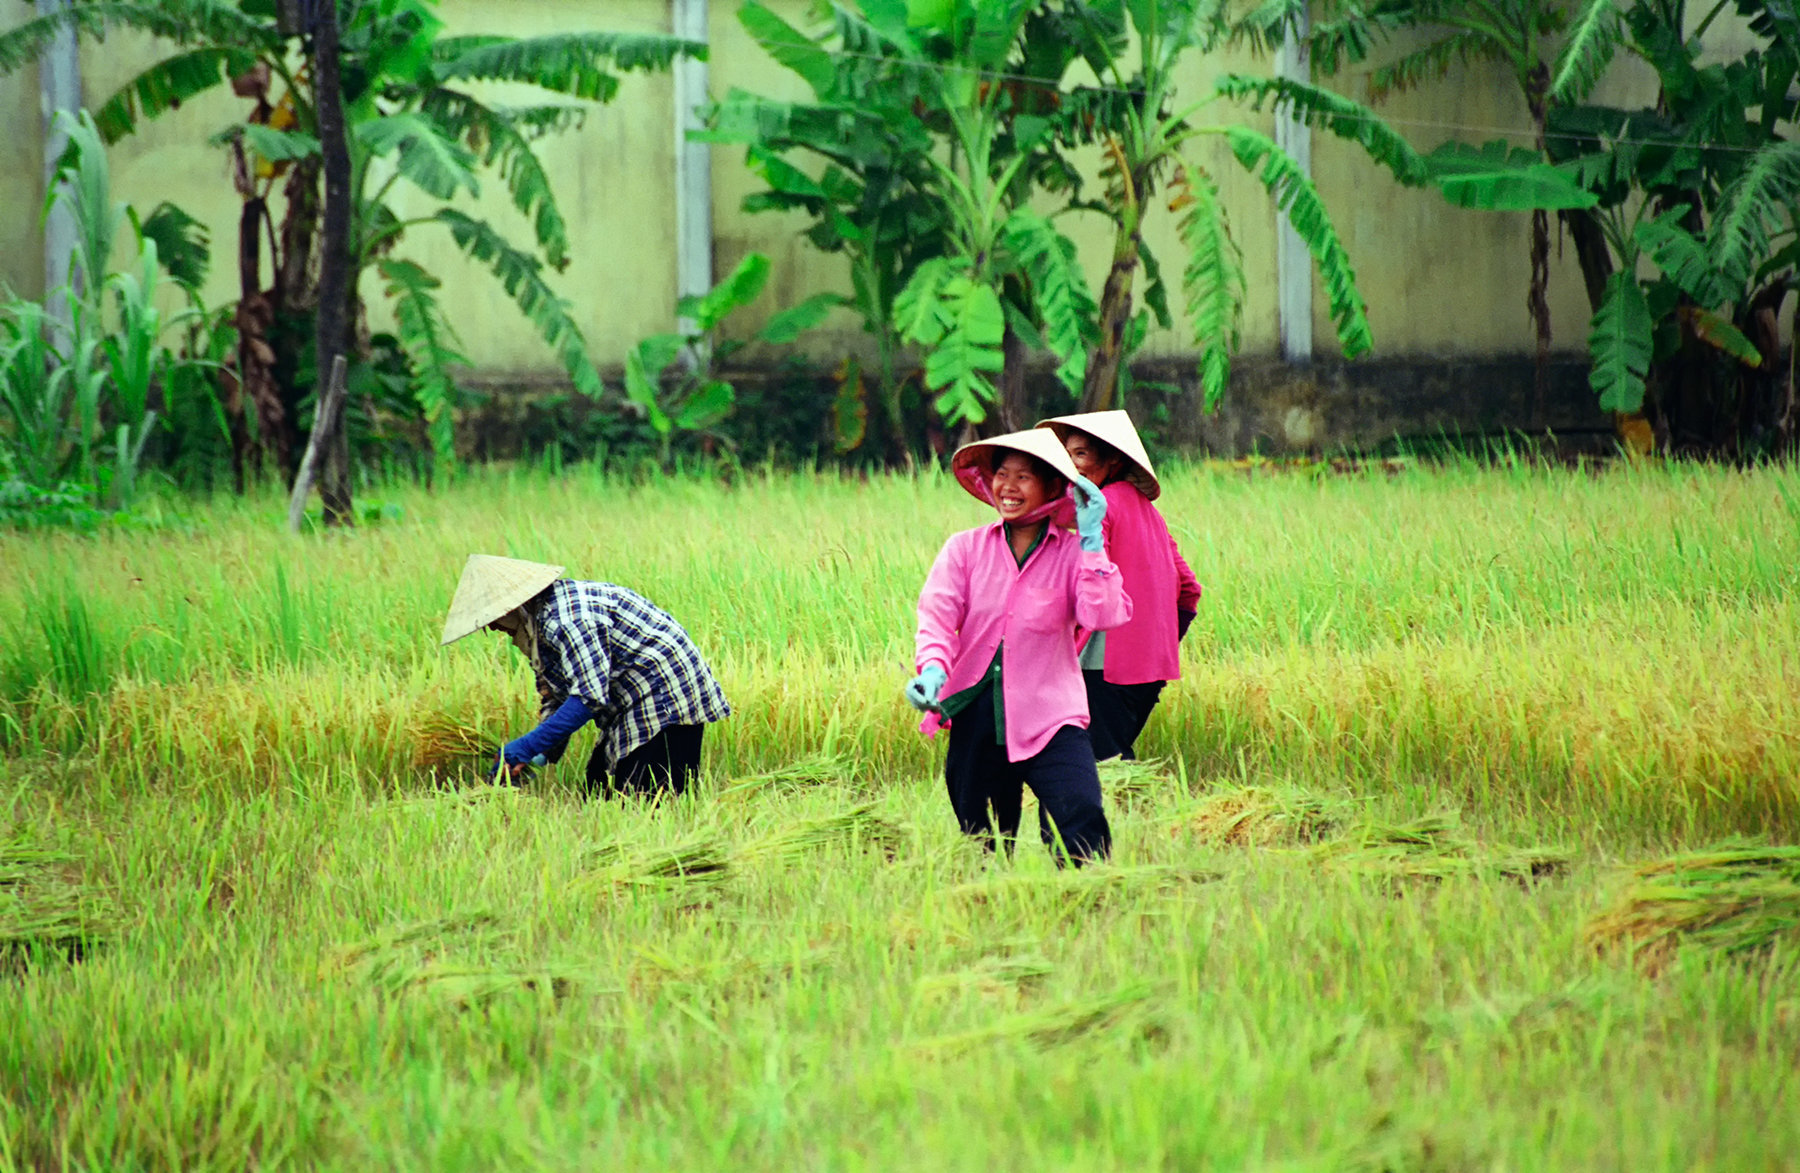 Vietnam, Mekong Delta, Women working in rice paddy